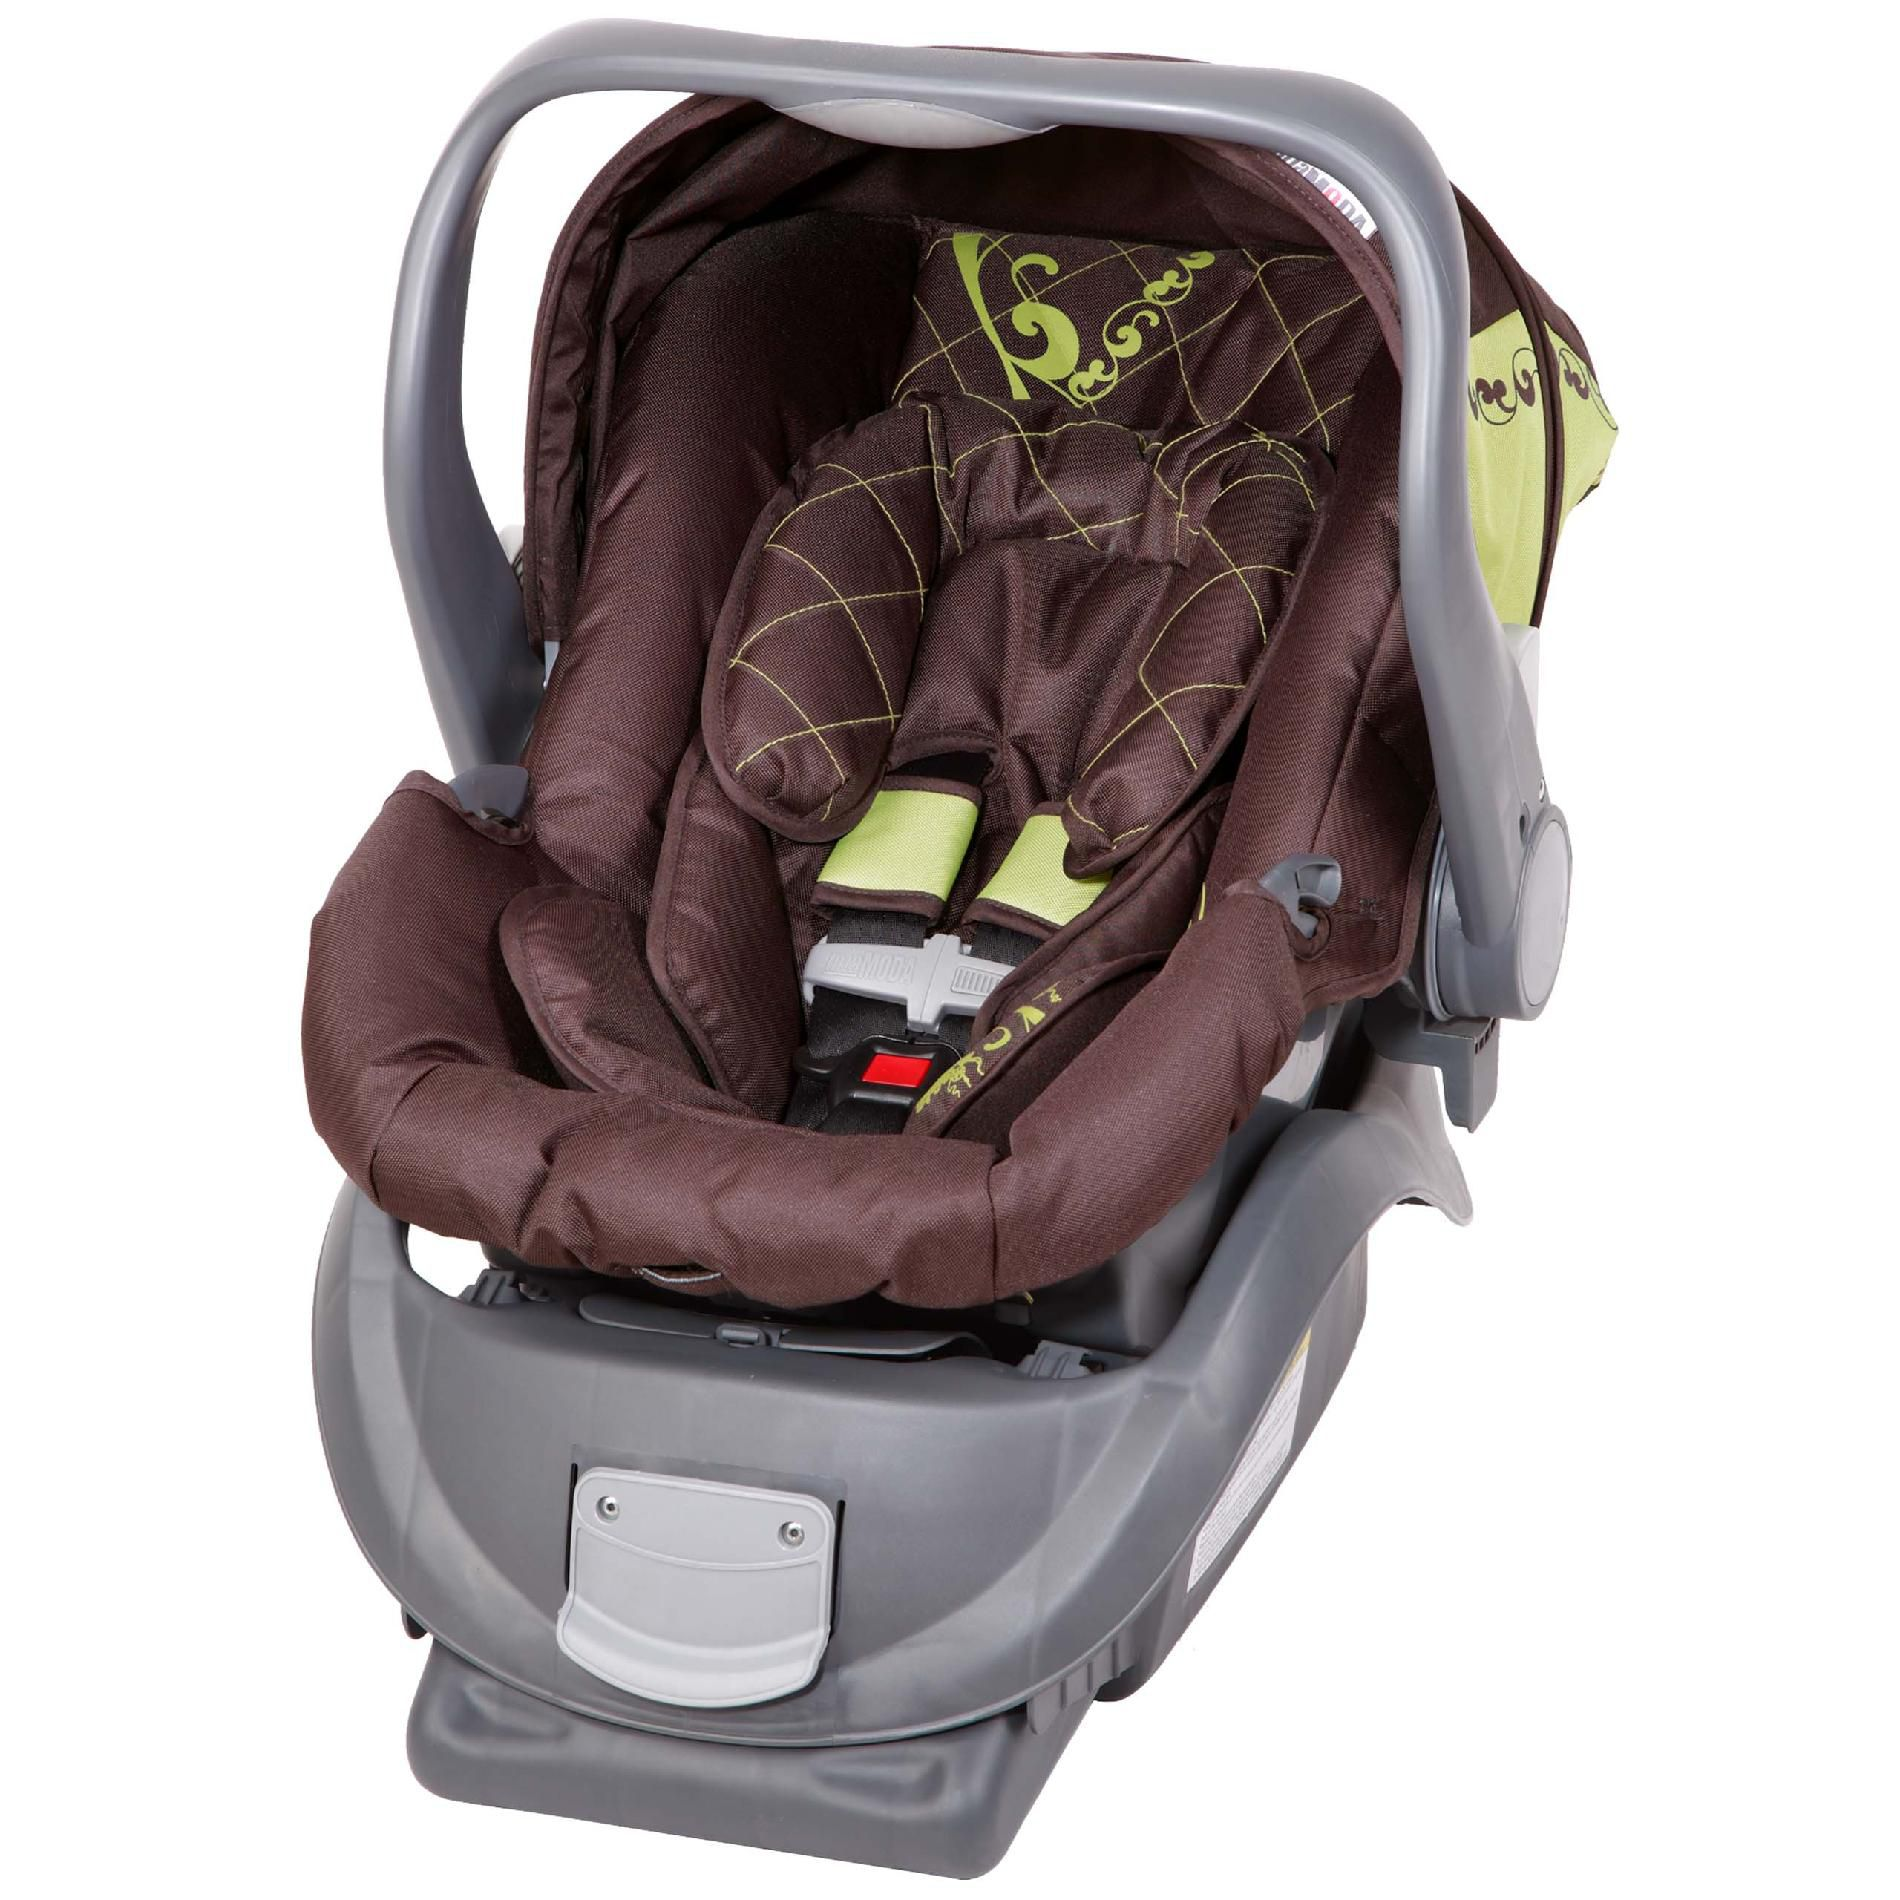 Newborn Car Seat Road Trip Mia Moda Certo Infant Car Seat In Brown Baby Baby Gear